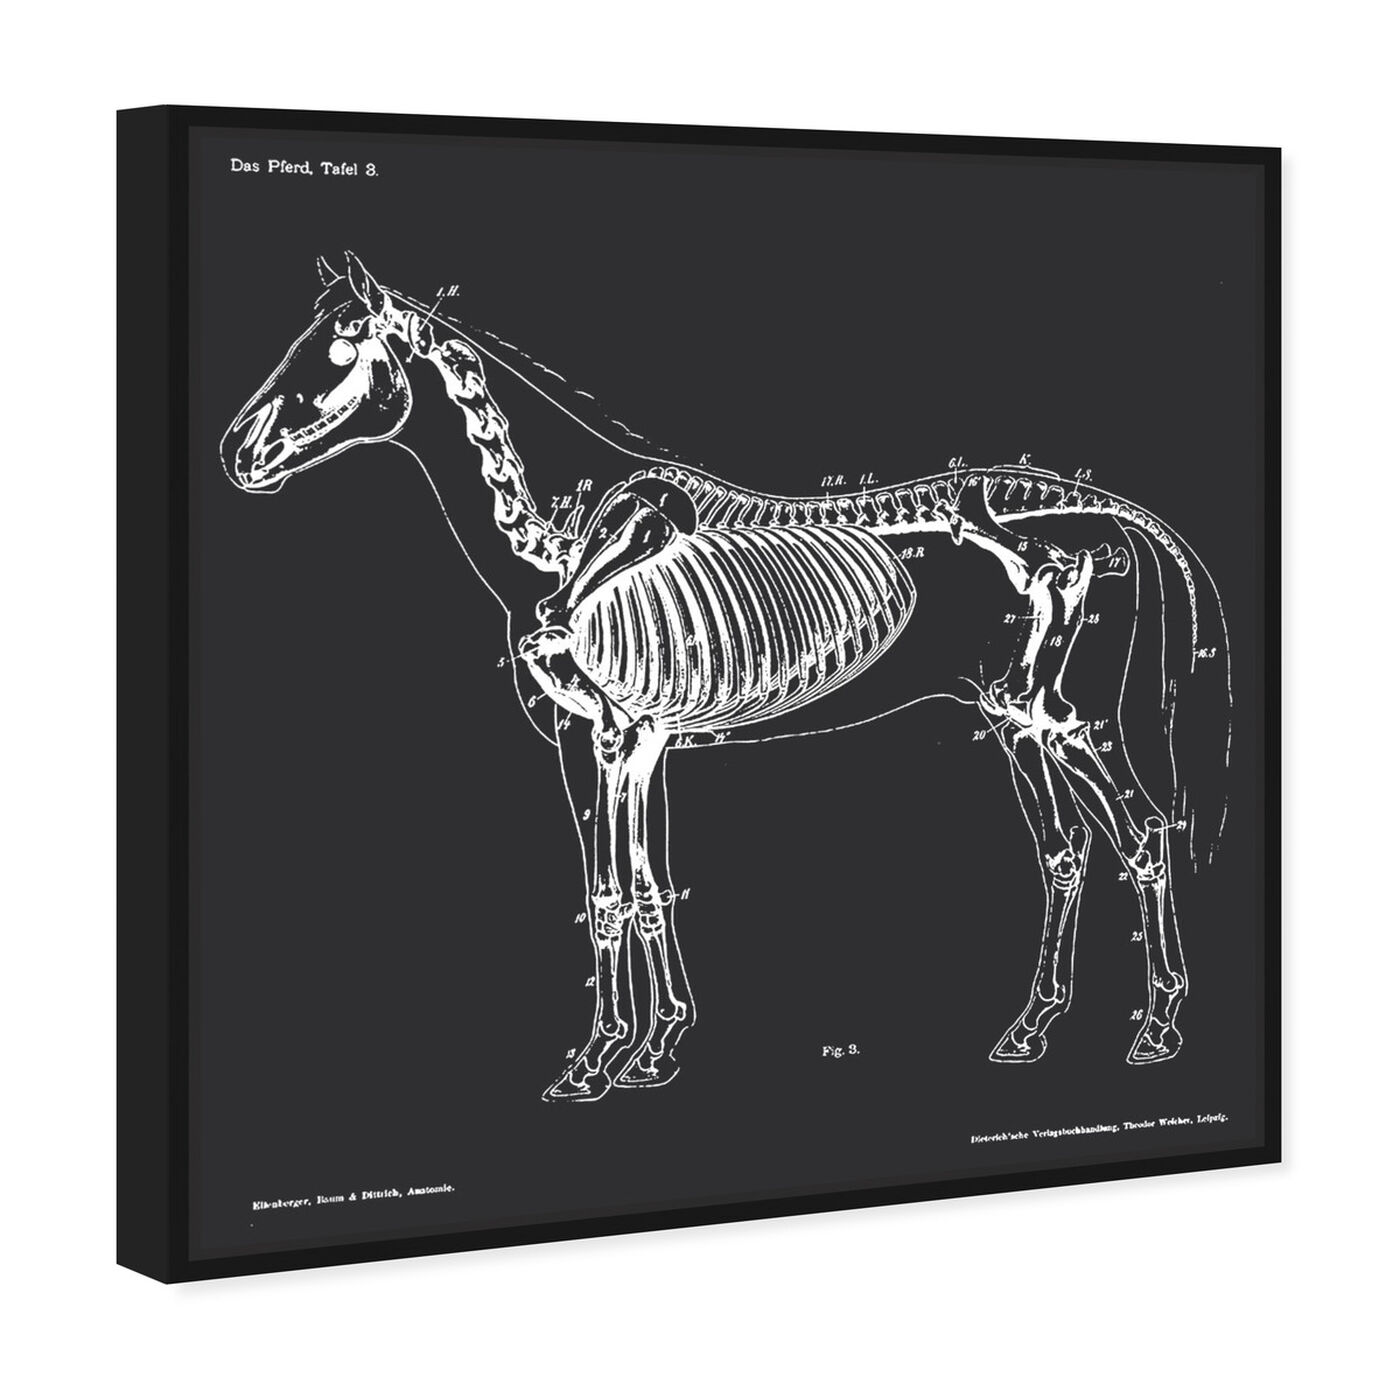 Angled view of Squelette Du Cheval featuring animals and skeletons art.